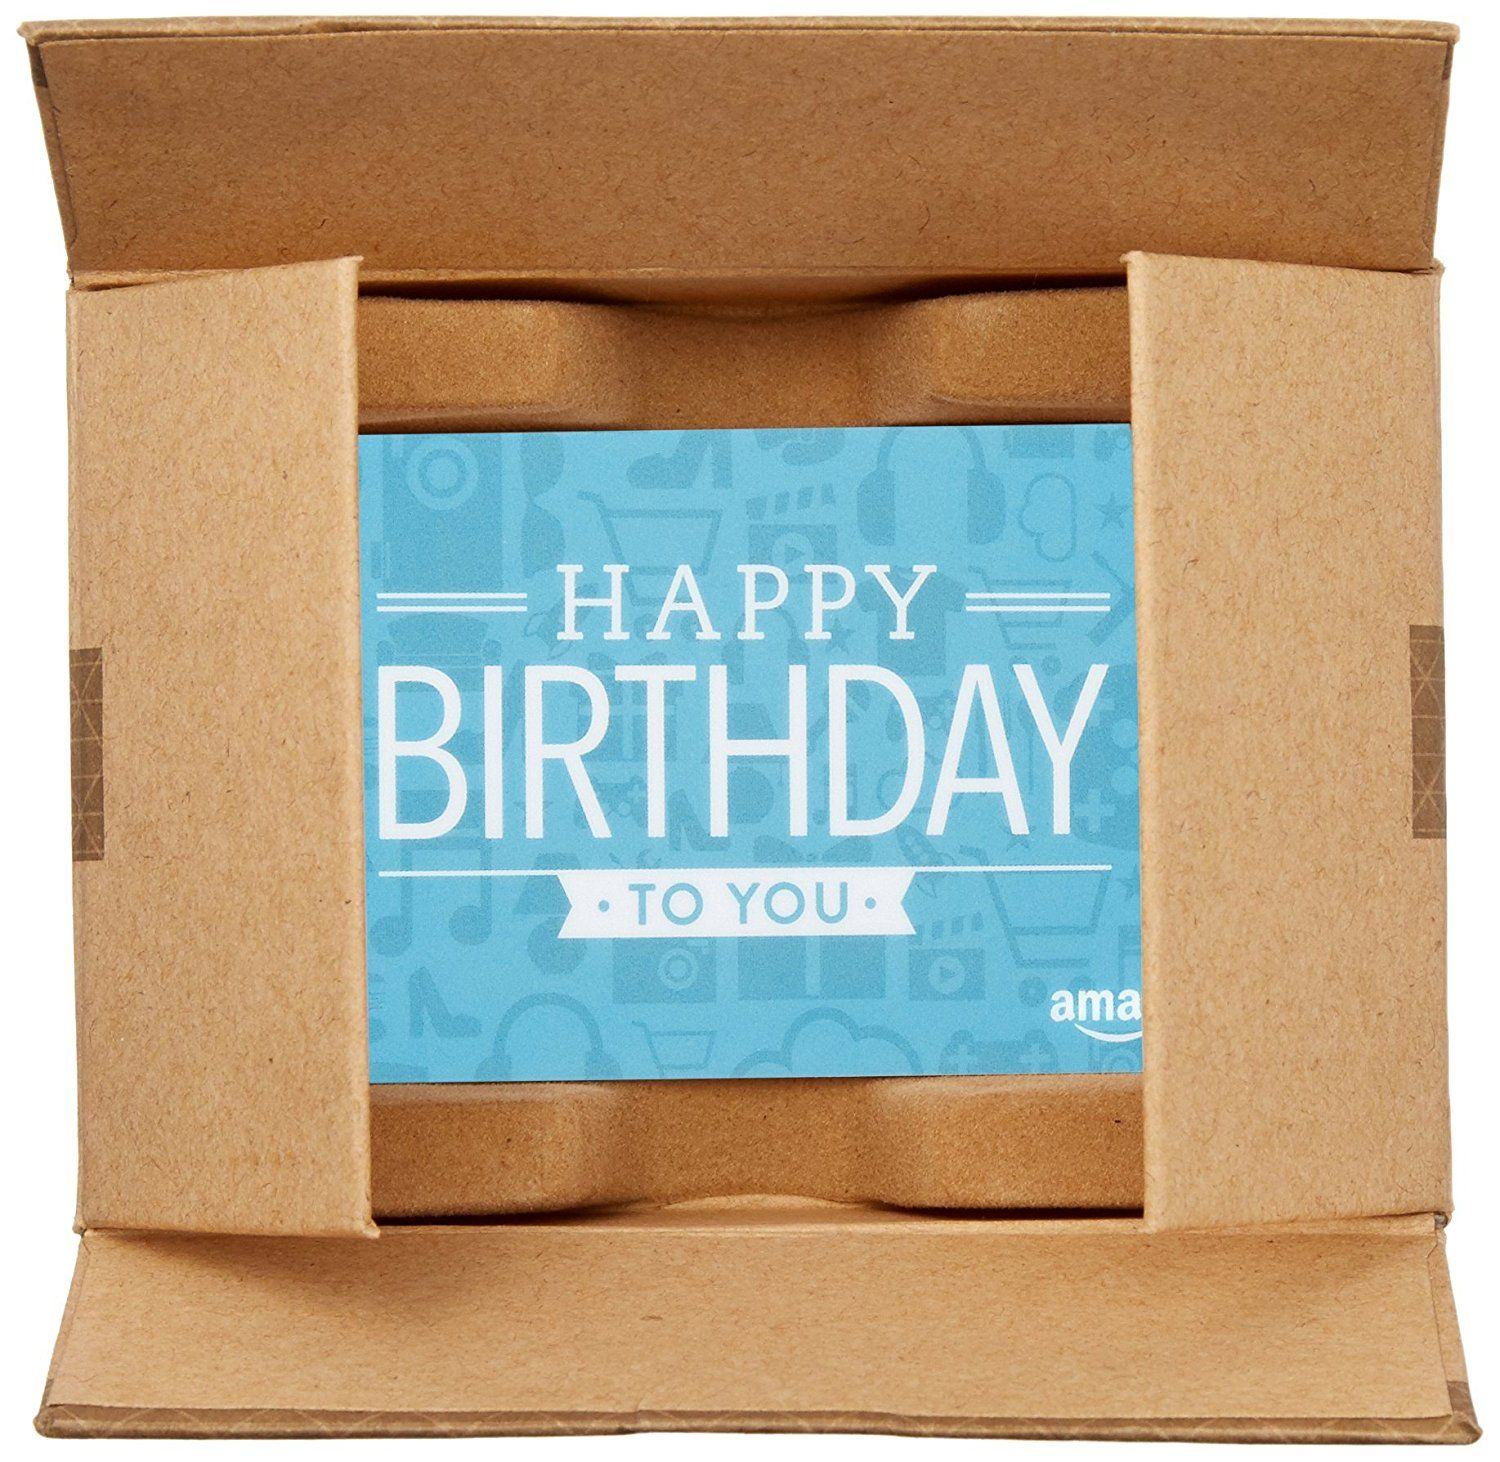 Amazon Com Amazon Com Gift Card For Any Amount In A Mini Amazon Shipping Box Birthday Icons Card Desi Happy Birthday Icons Birthday Icon Cool Gifts For Teens